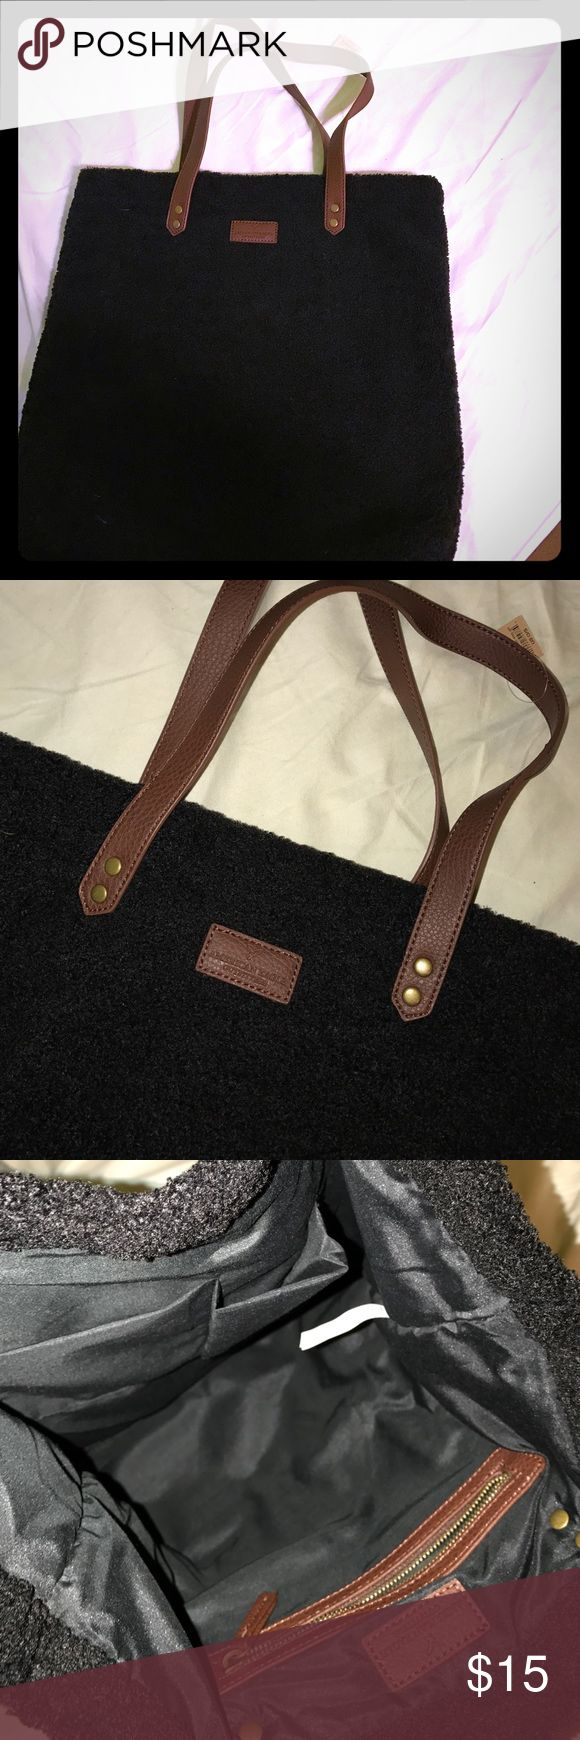 "American Eagle Tote Brand New 16""x17"" strap 10"" Open to offers 🎁 American Eagle Outfitters Bags Totes"